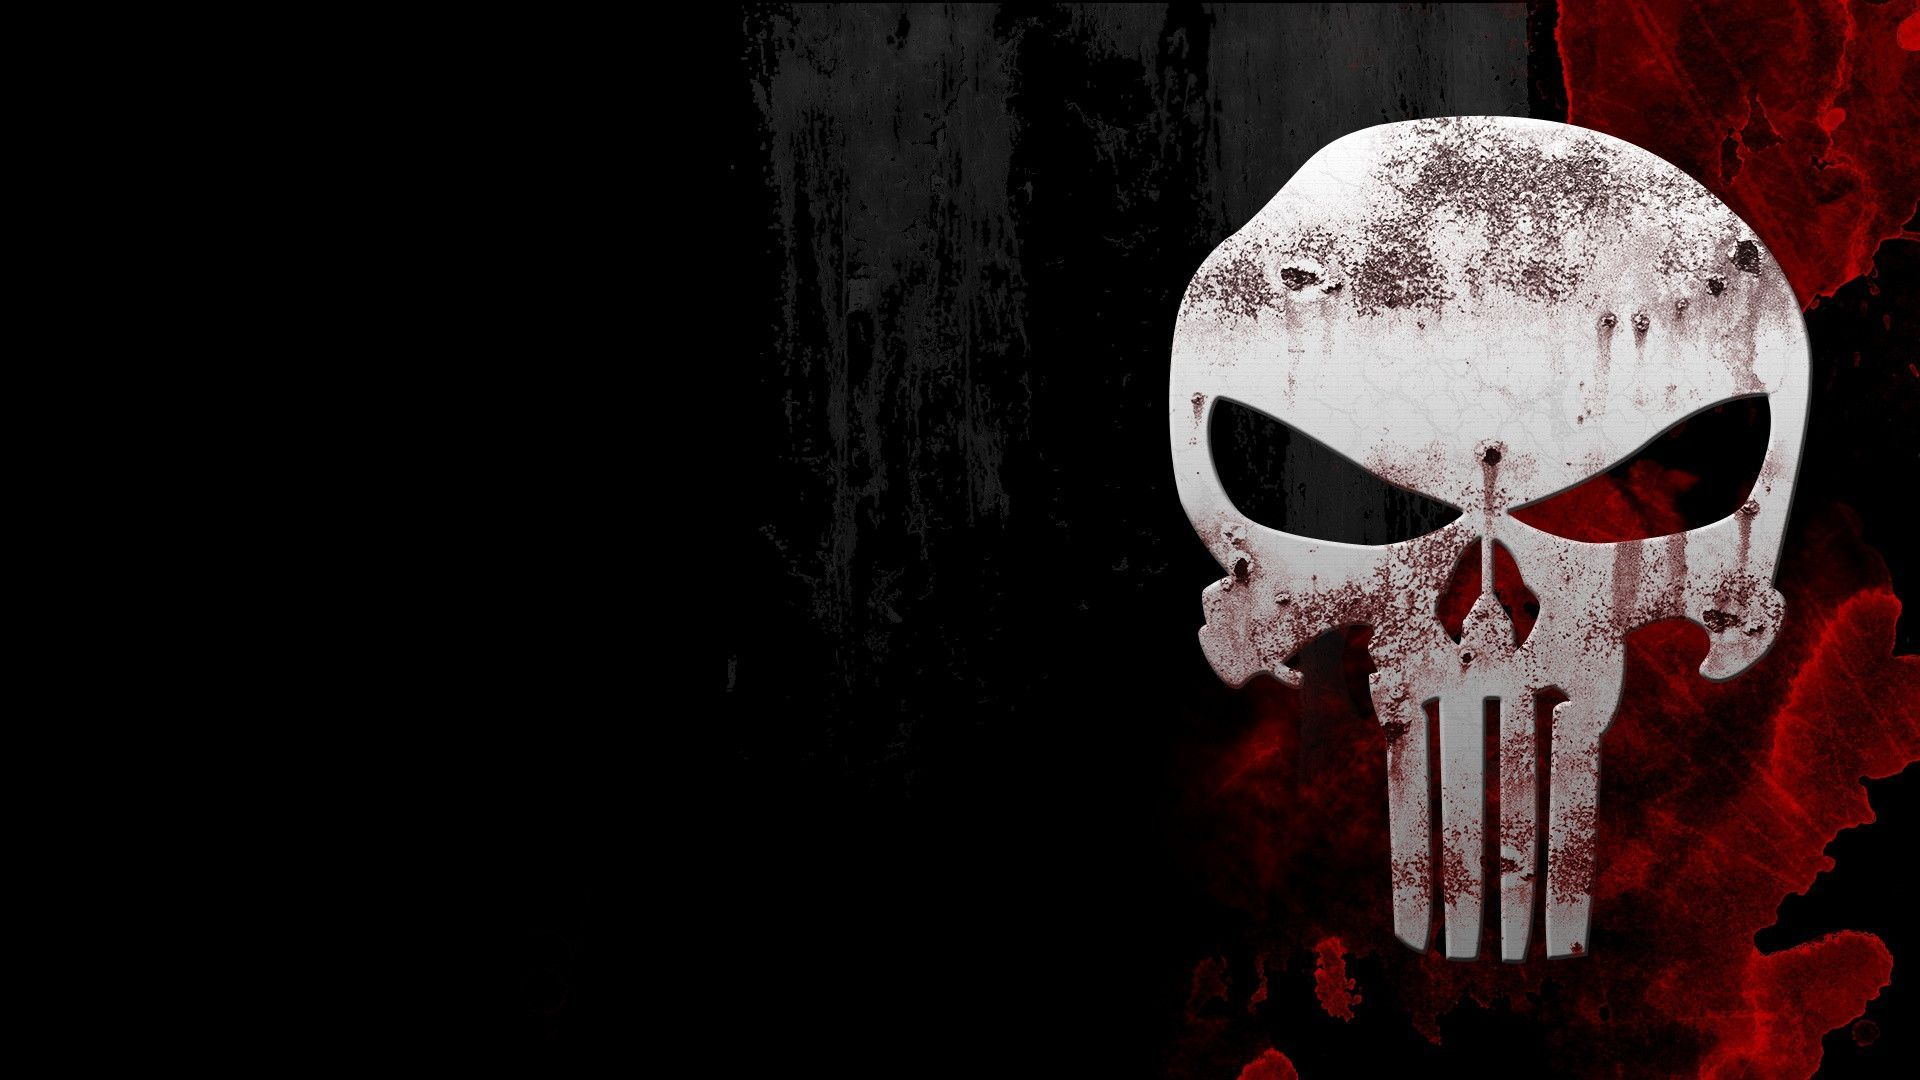 Skull Wallpaper HD Download